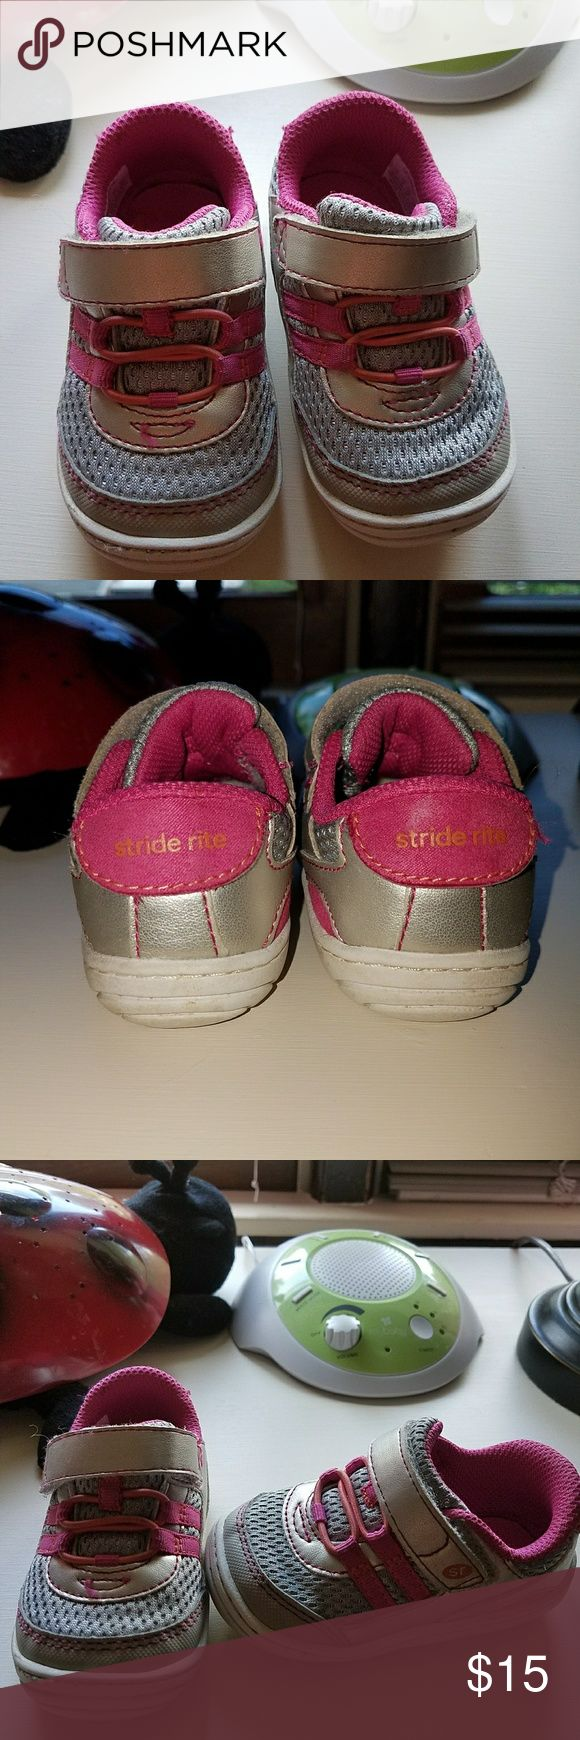 Stride rite toddler sneakers Excellent condition silver and pink girls size 4 Stride Rite sneakers Stride Rite Shoes Sneakers